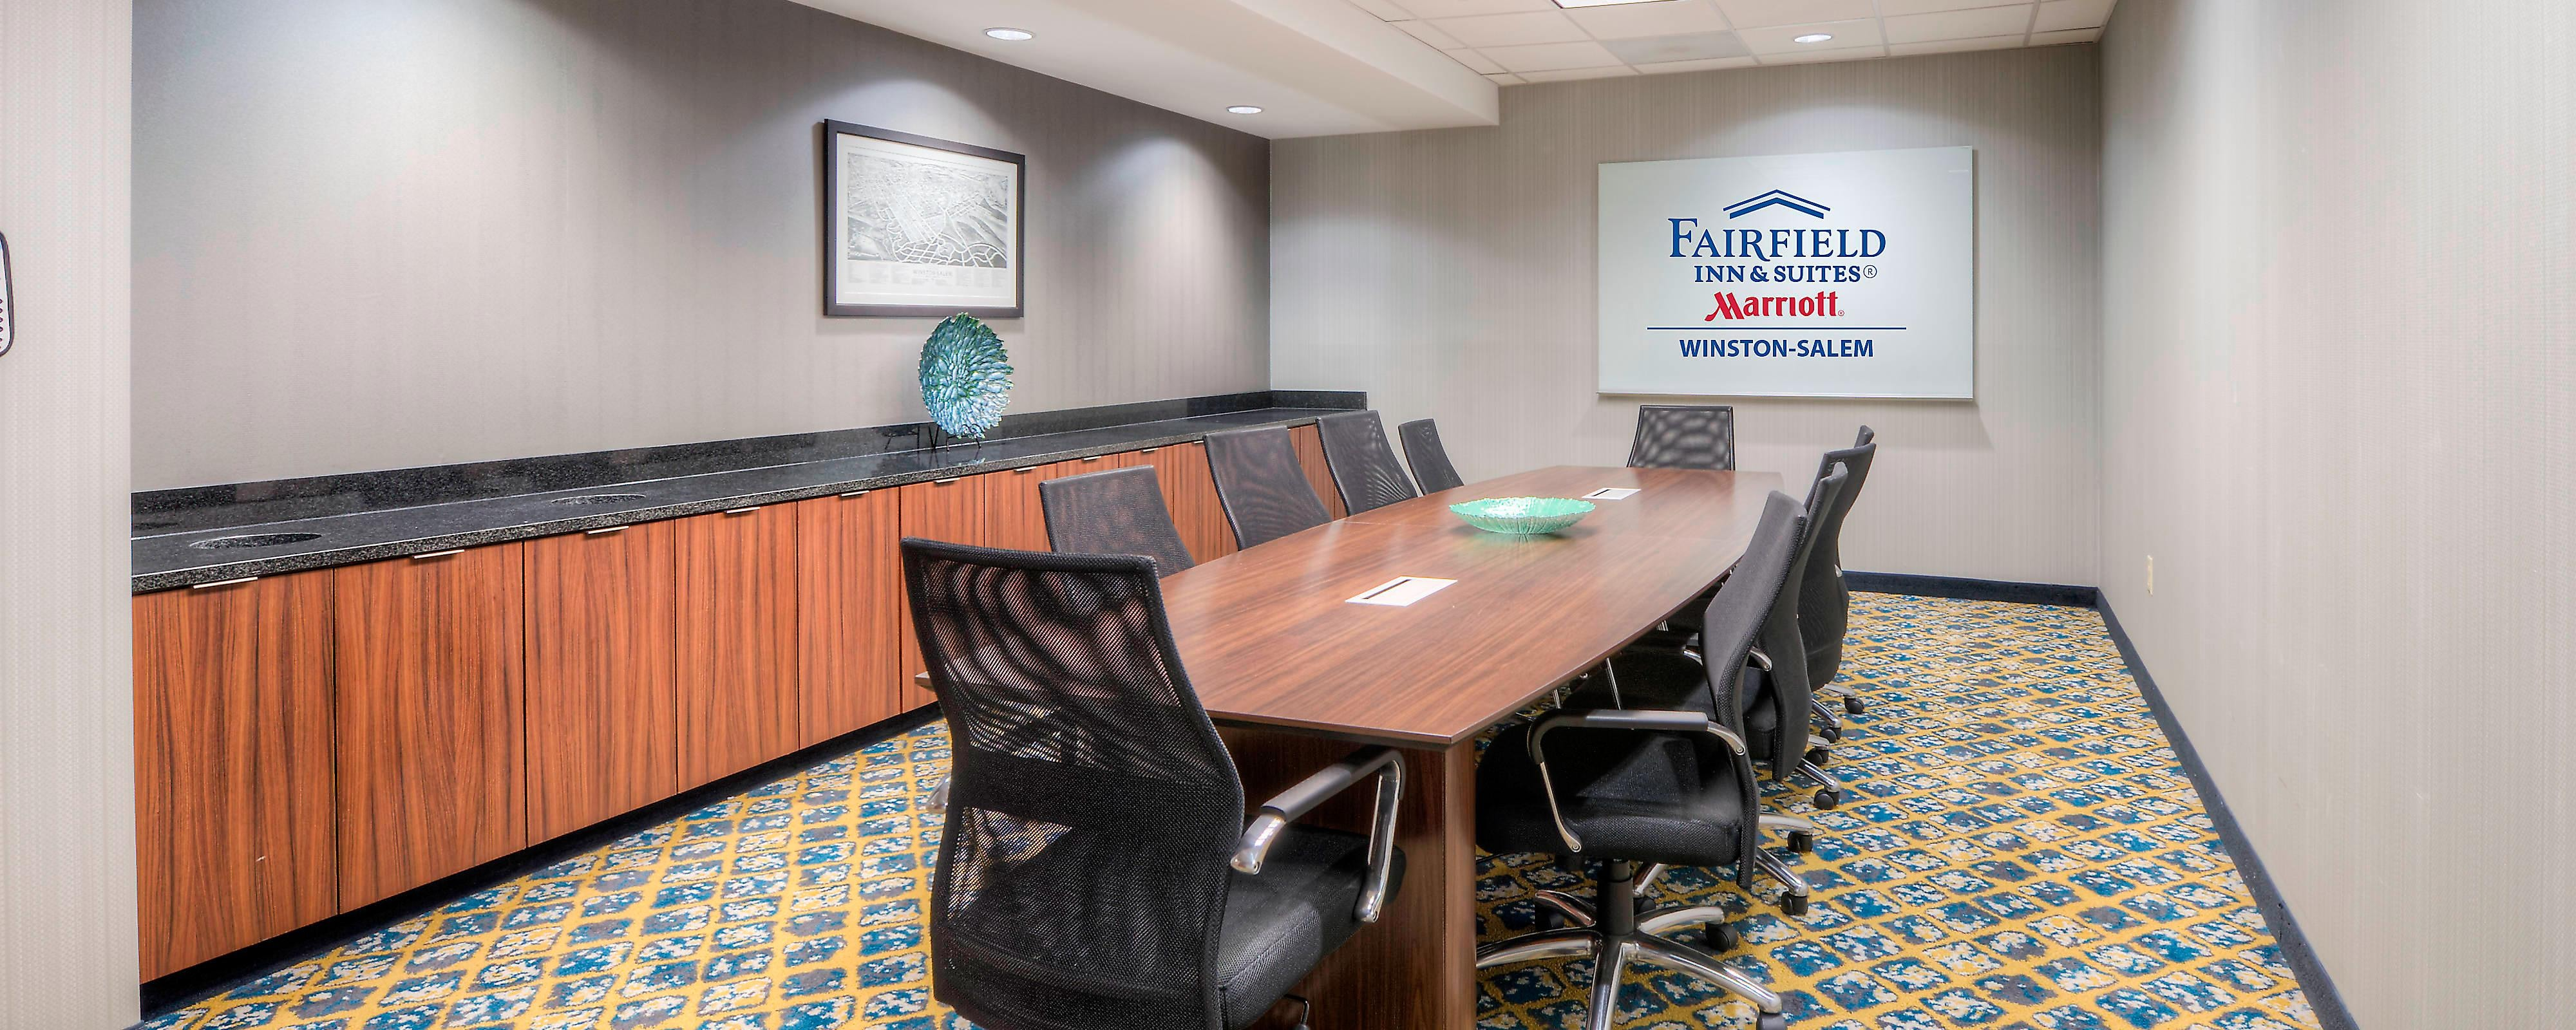 Fairfield Inn & Suites Winston Salem Downtown Boardroom